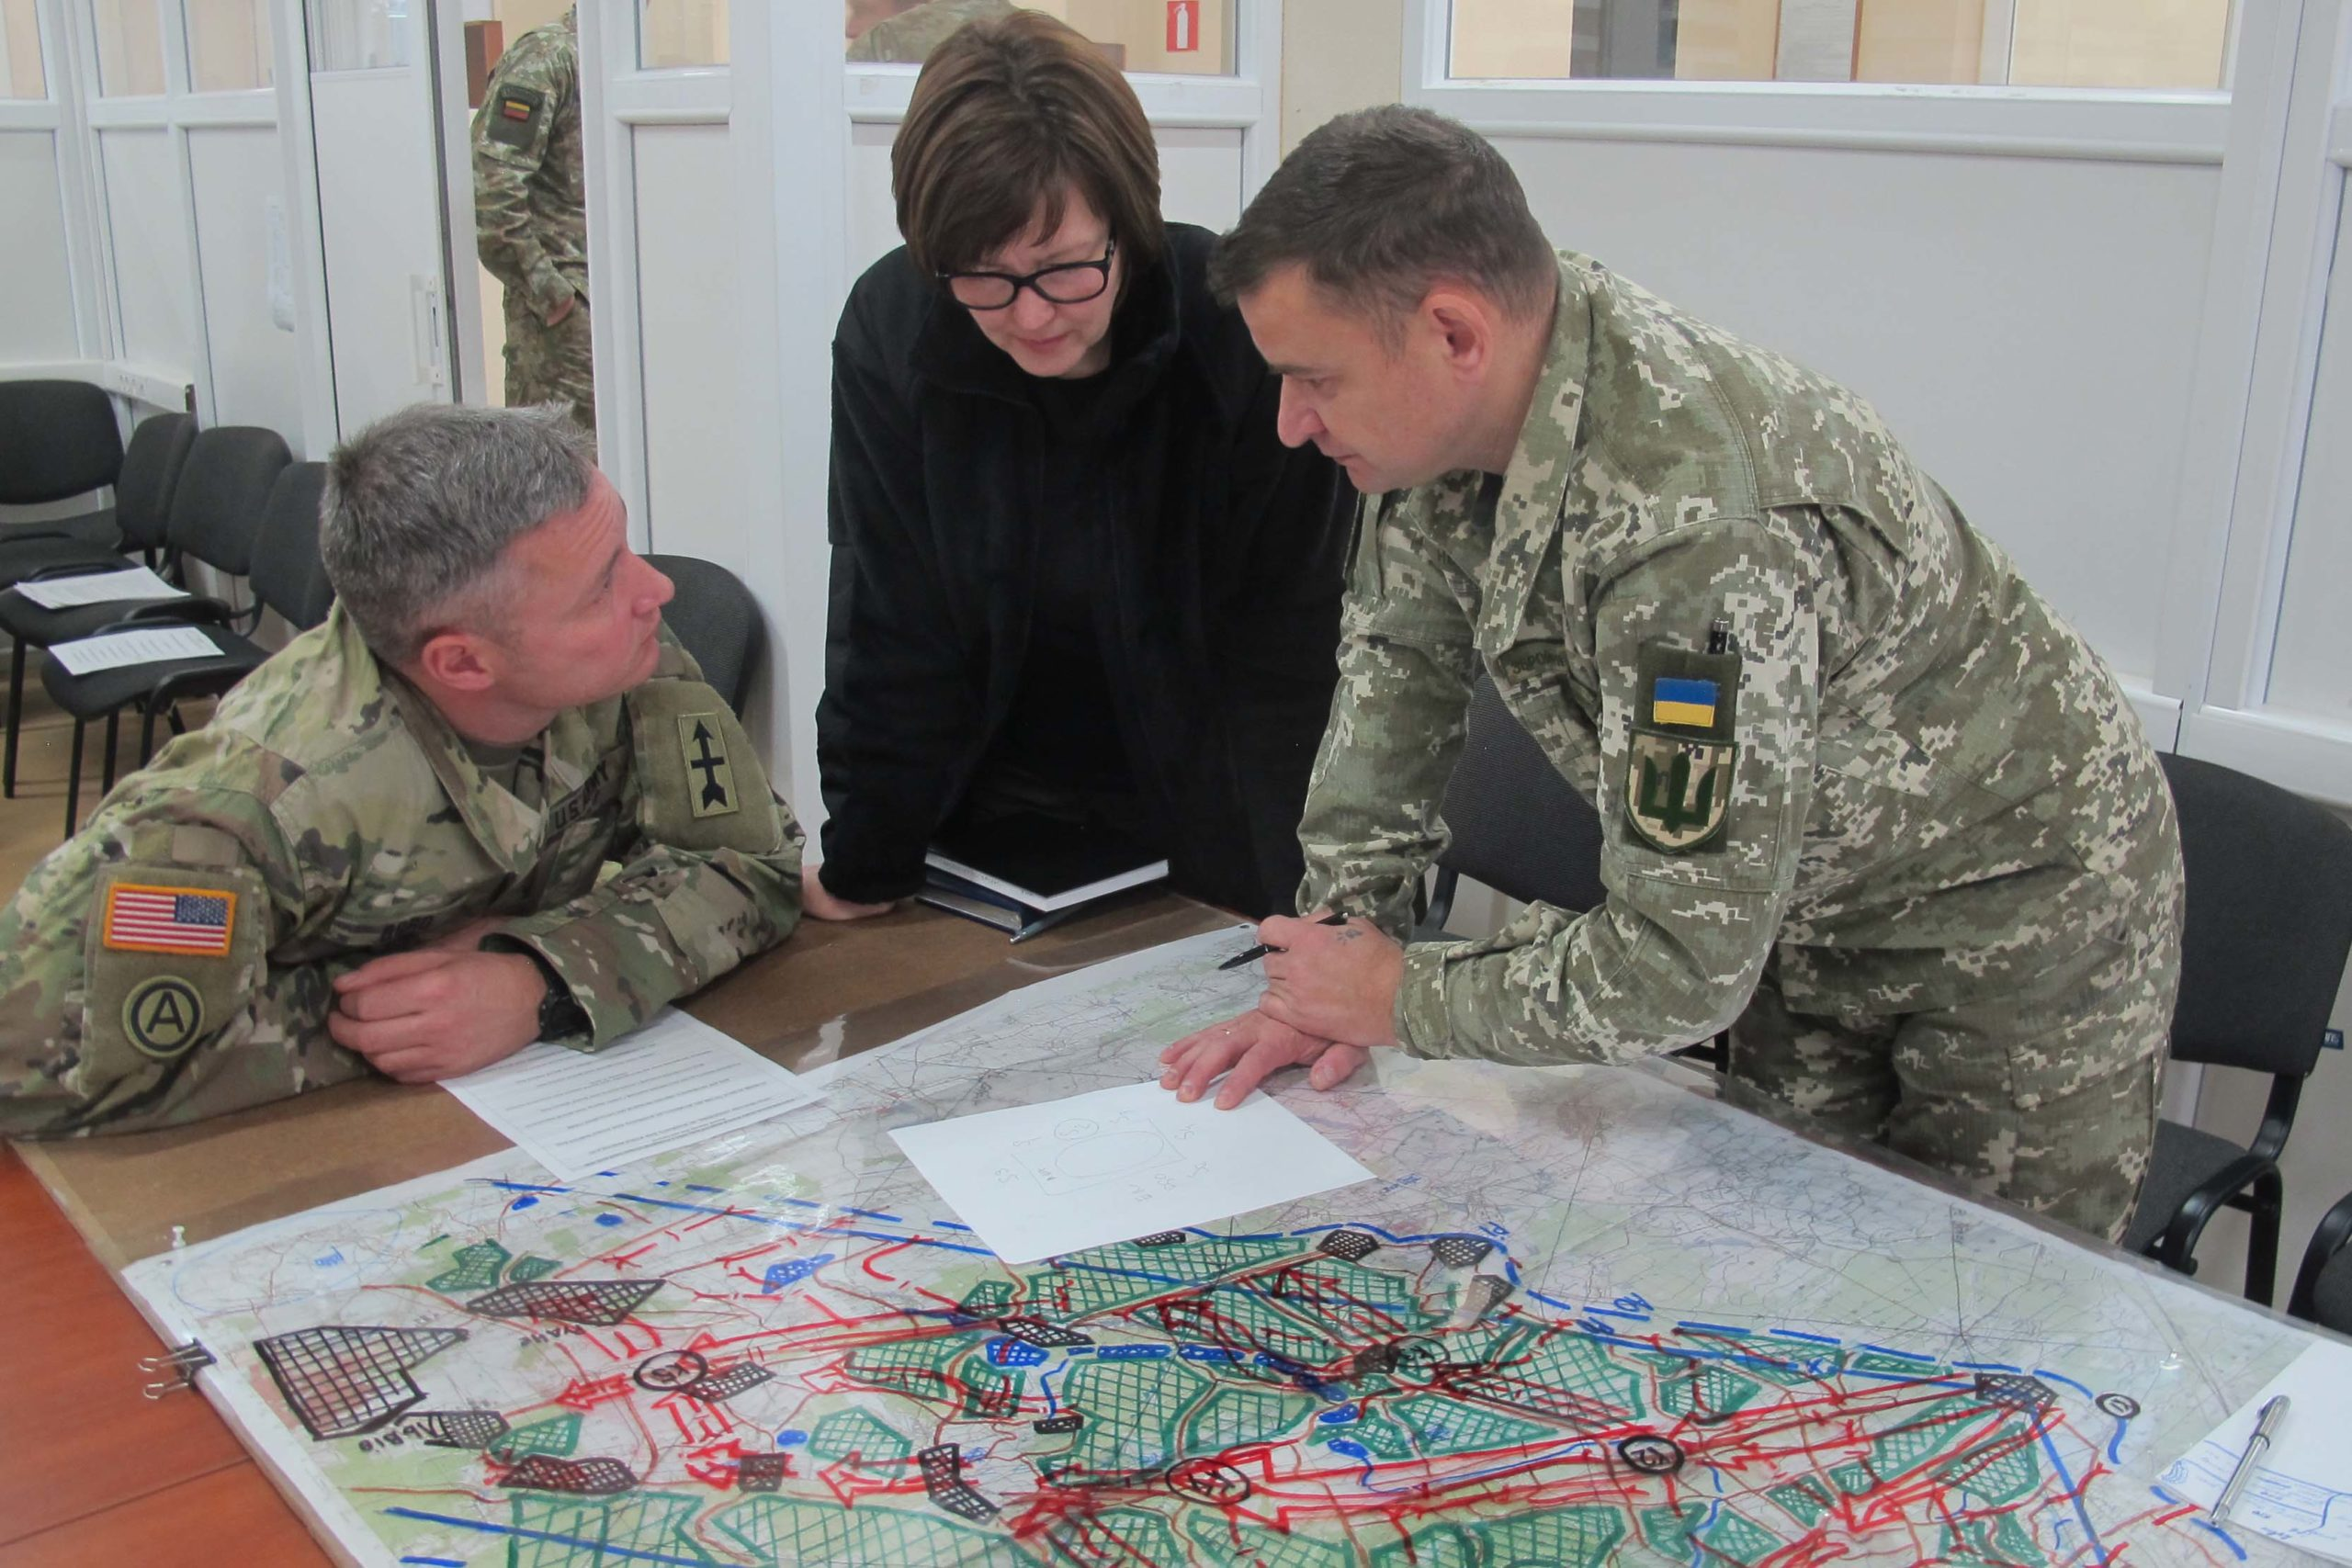 A Ukrainian and American soldier talk through a potential battlefield scenario with the help of an interpreter at the Combat Training Center in Yavoriv, Ukraine. The Wisconsin National Guard is helping train Ukraine's military.